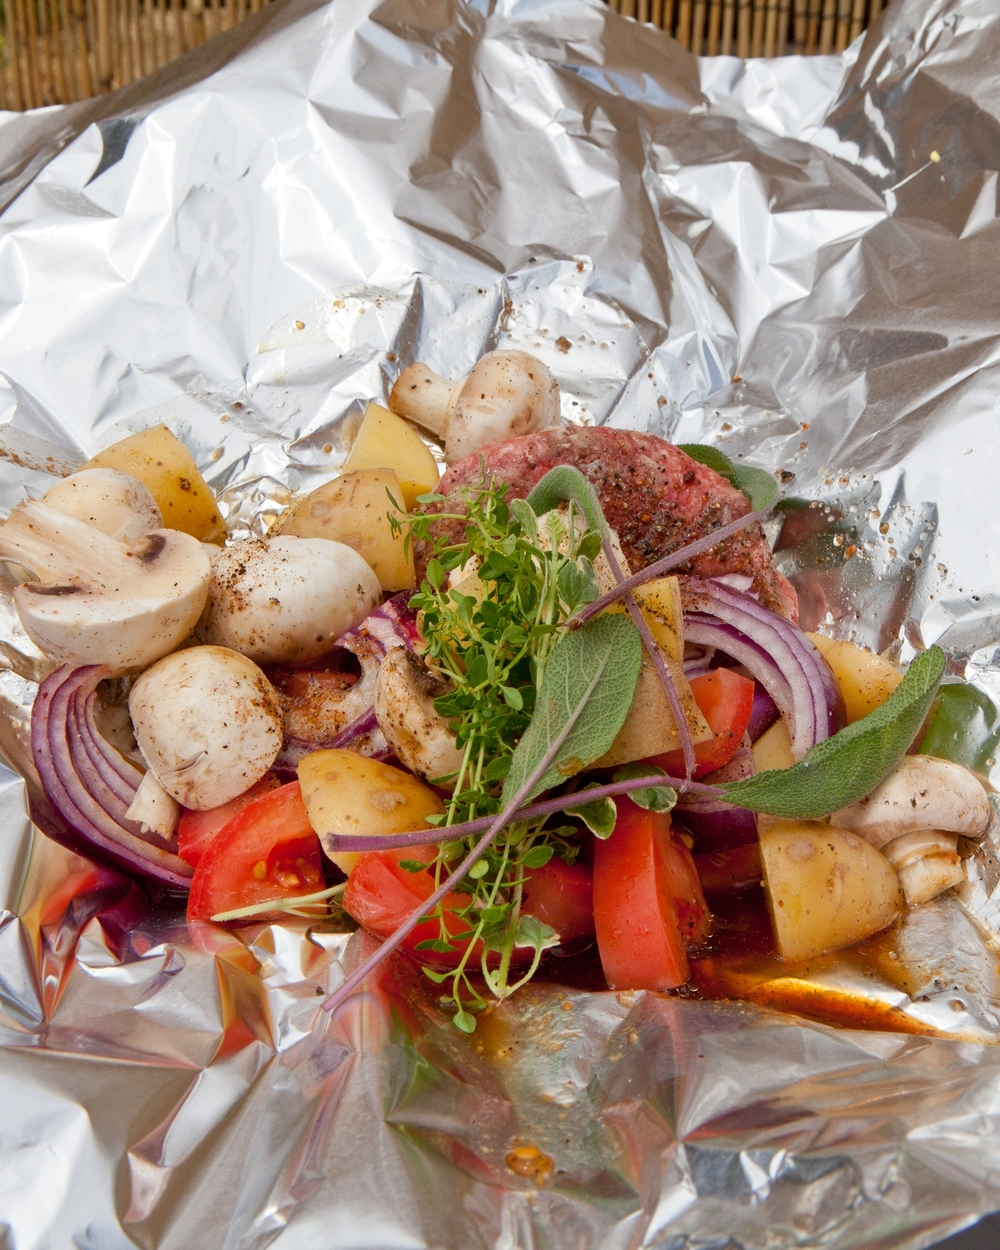 Preparing a hobo meal is quite simple: Place ingredients on aluminum foil then fold into a sealed packet and cook over hot coals. Photos by Matthew Martin